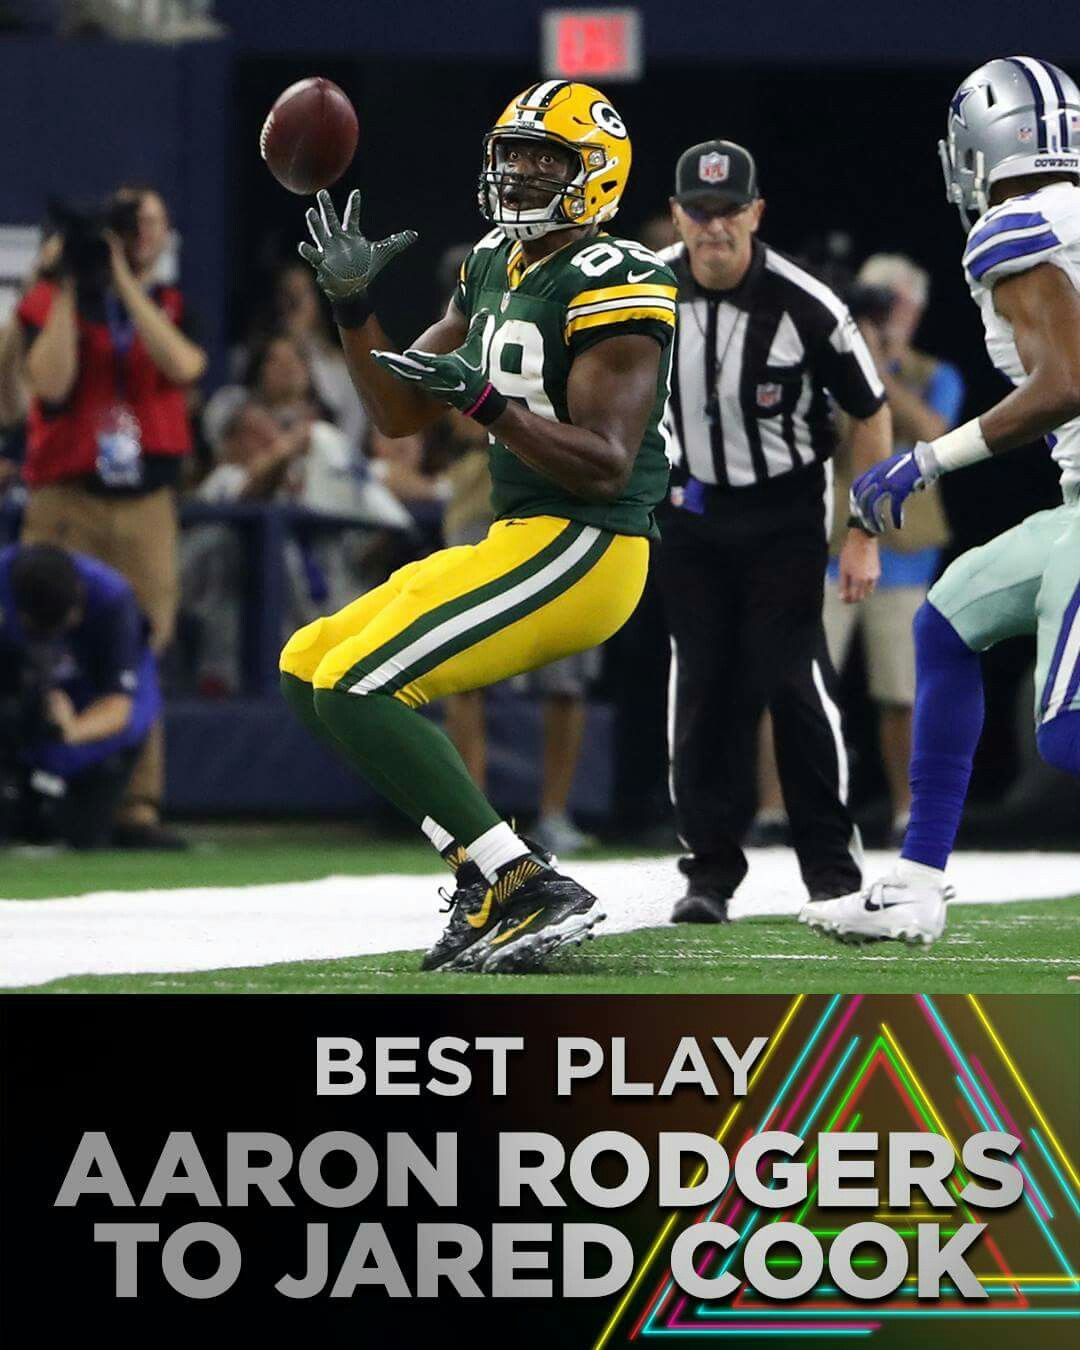 Best Play Jared cook, Green bay packers clothing